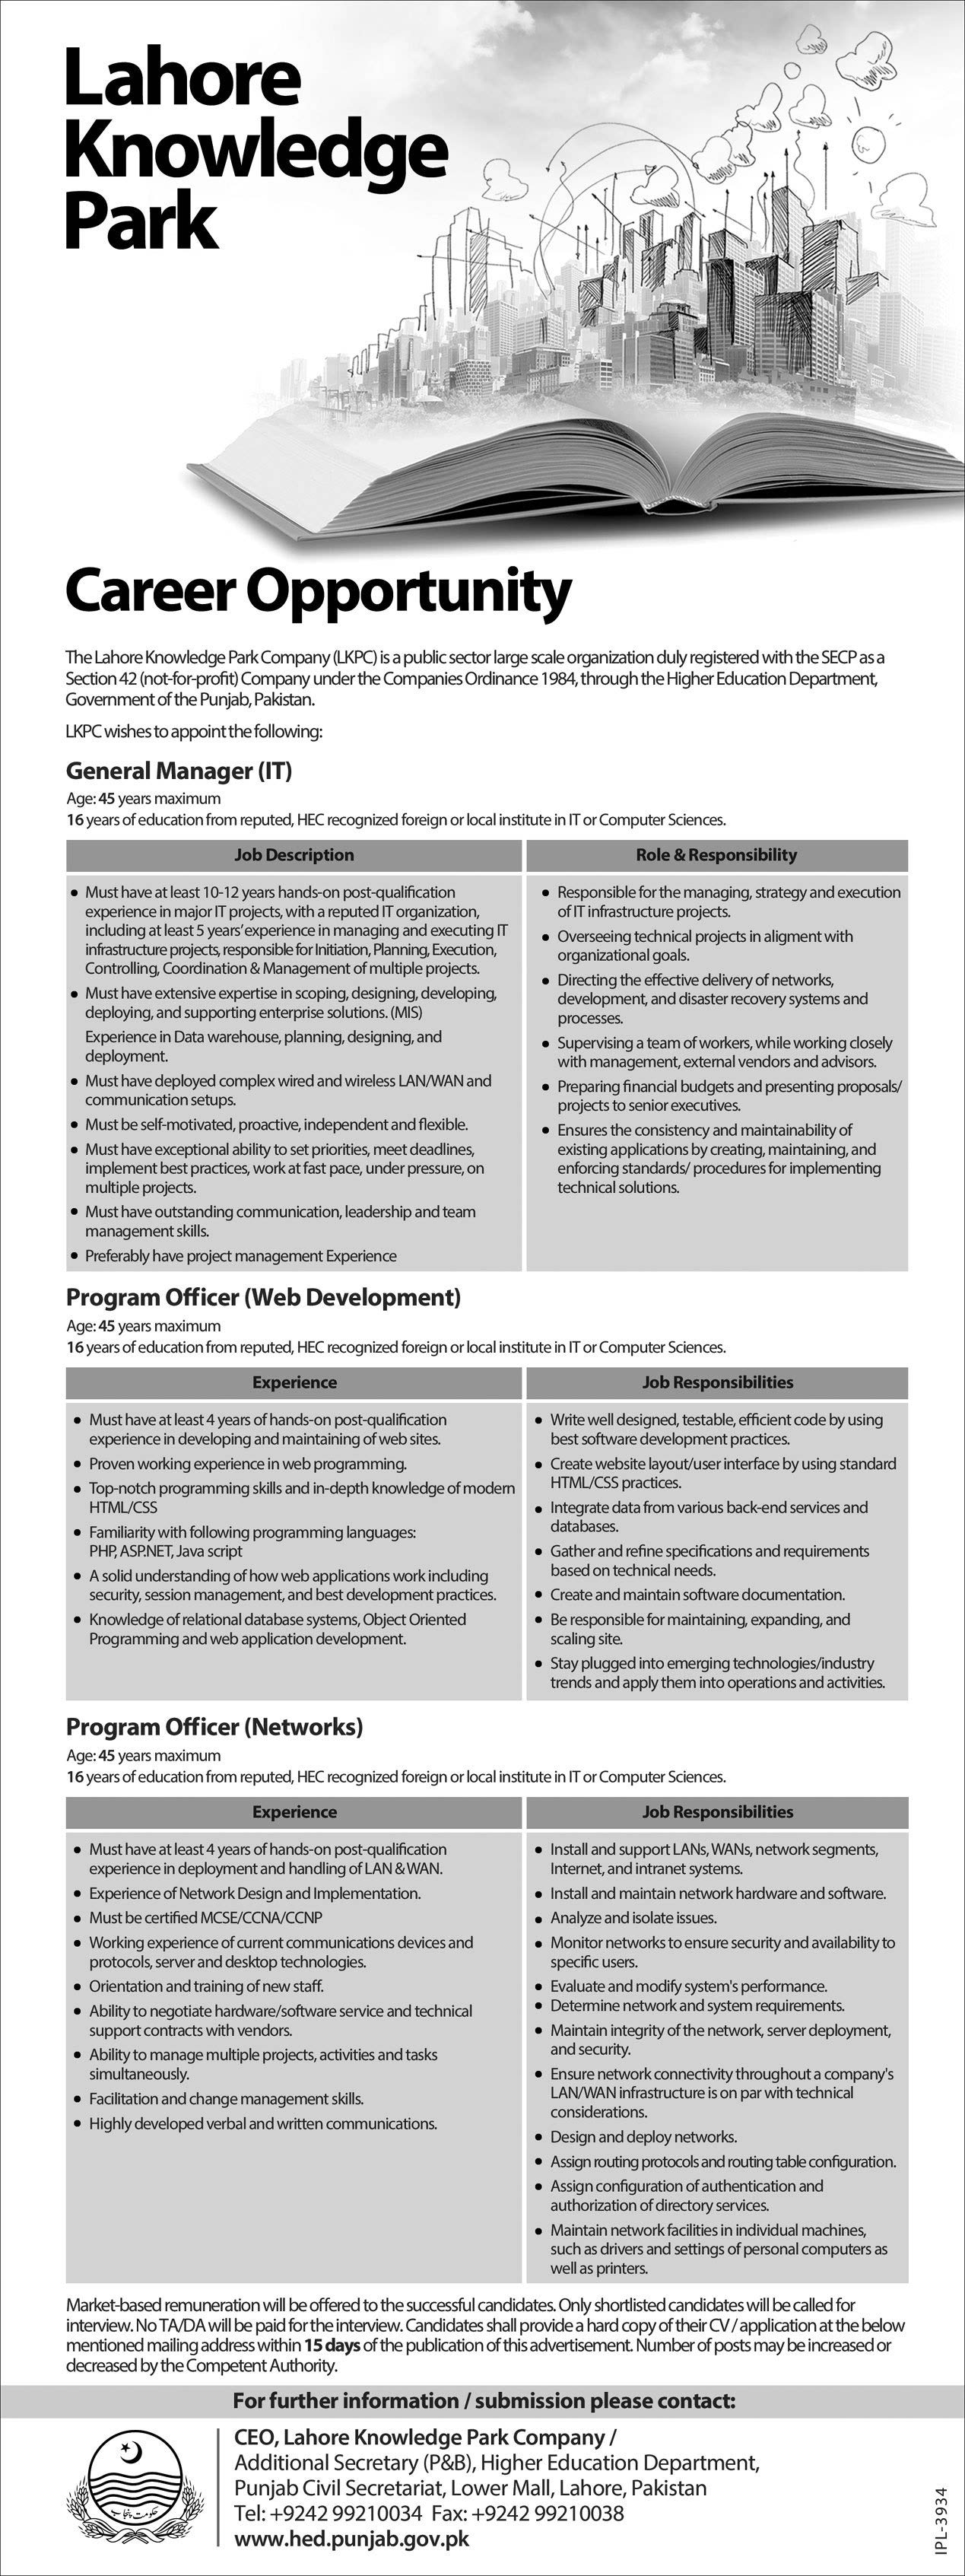 Lahore Knowledge Park Jobs